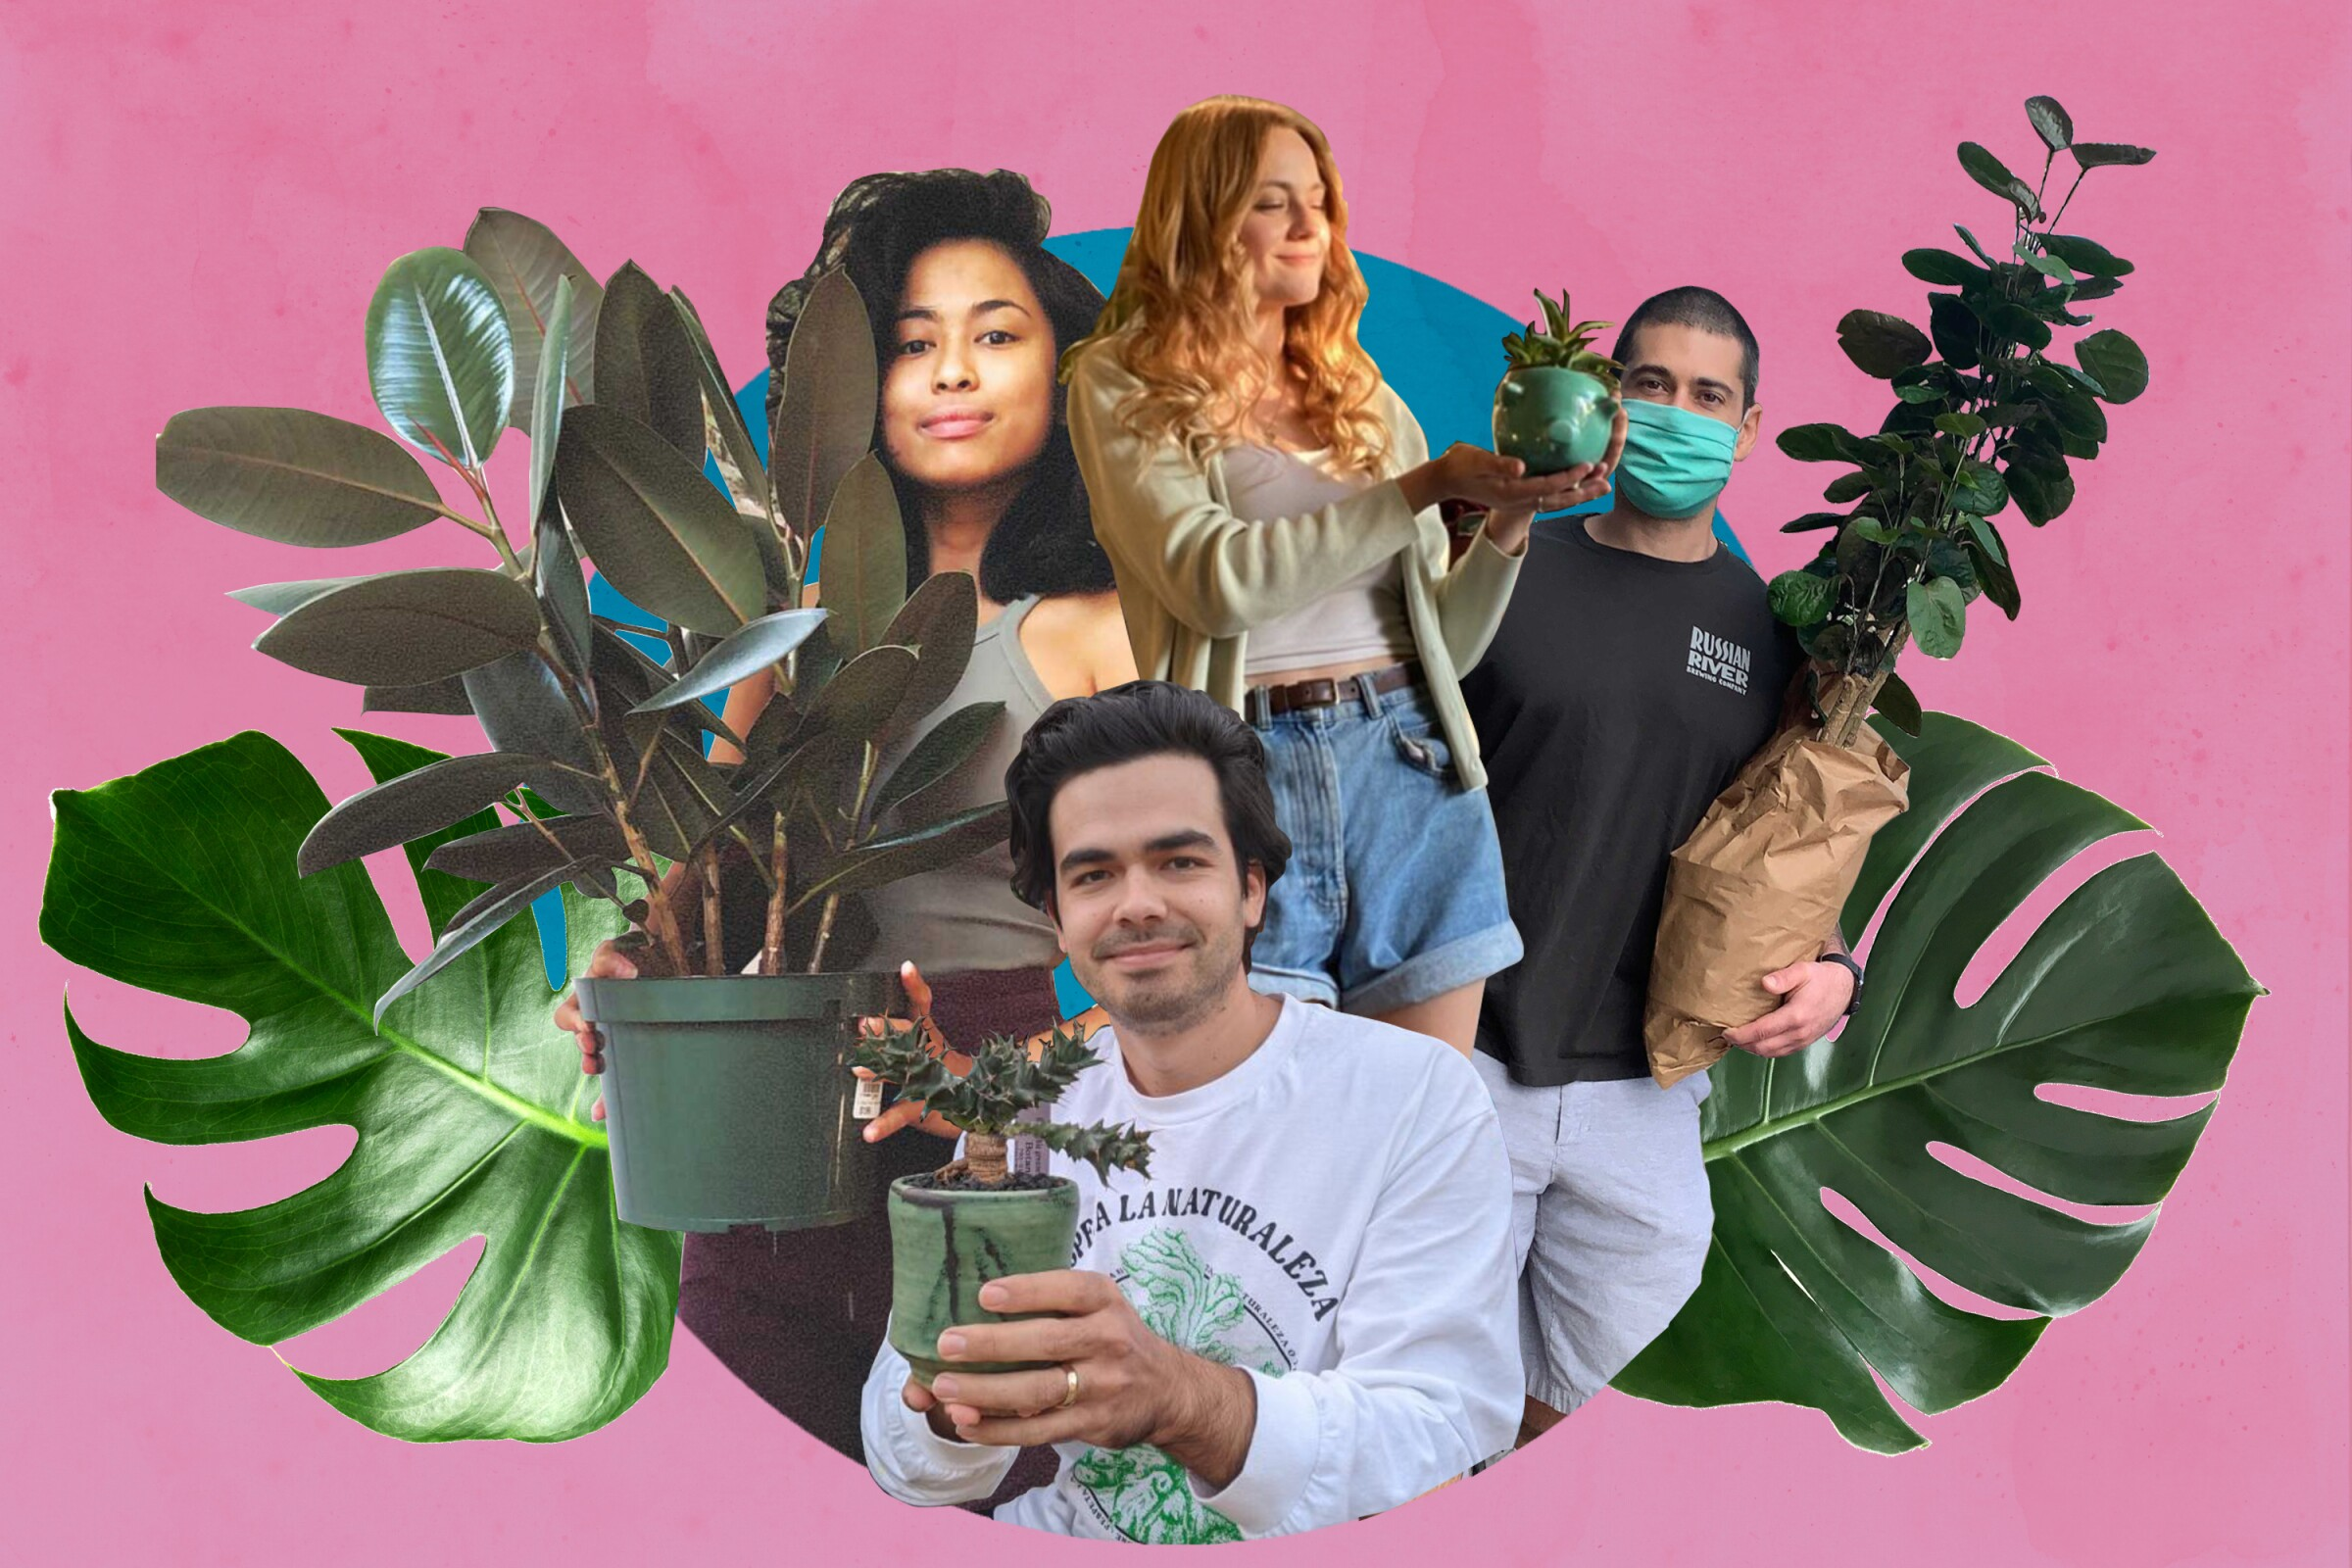 A collage of people showing their plants